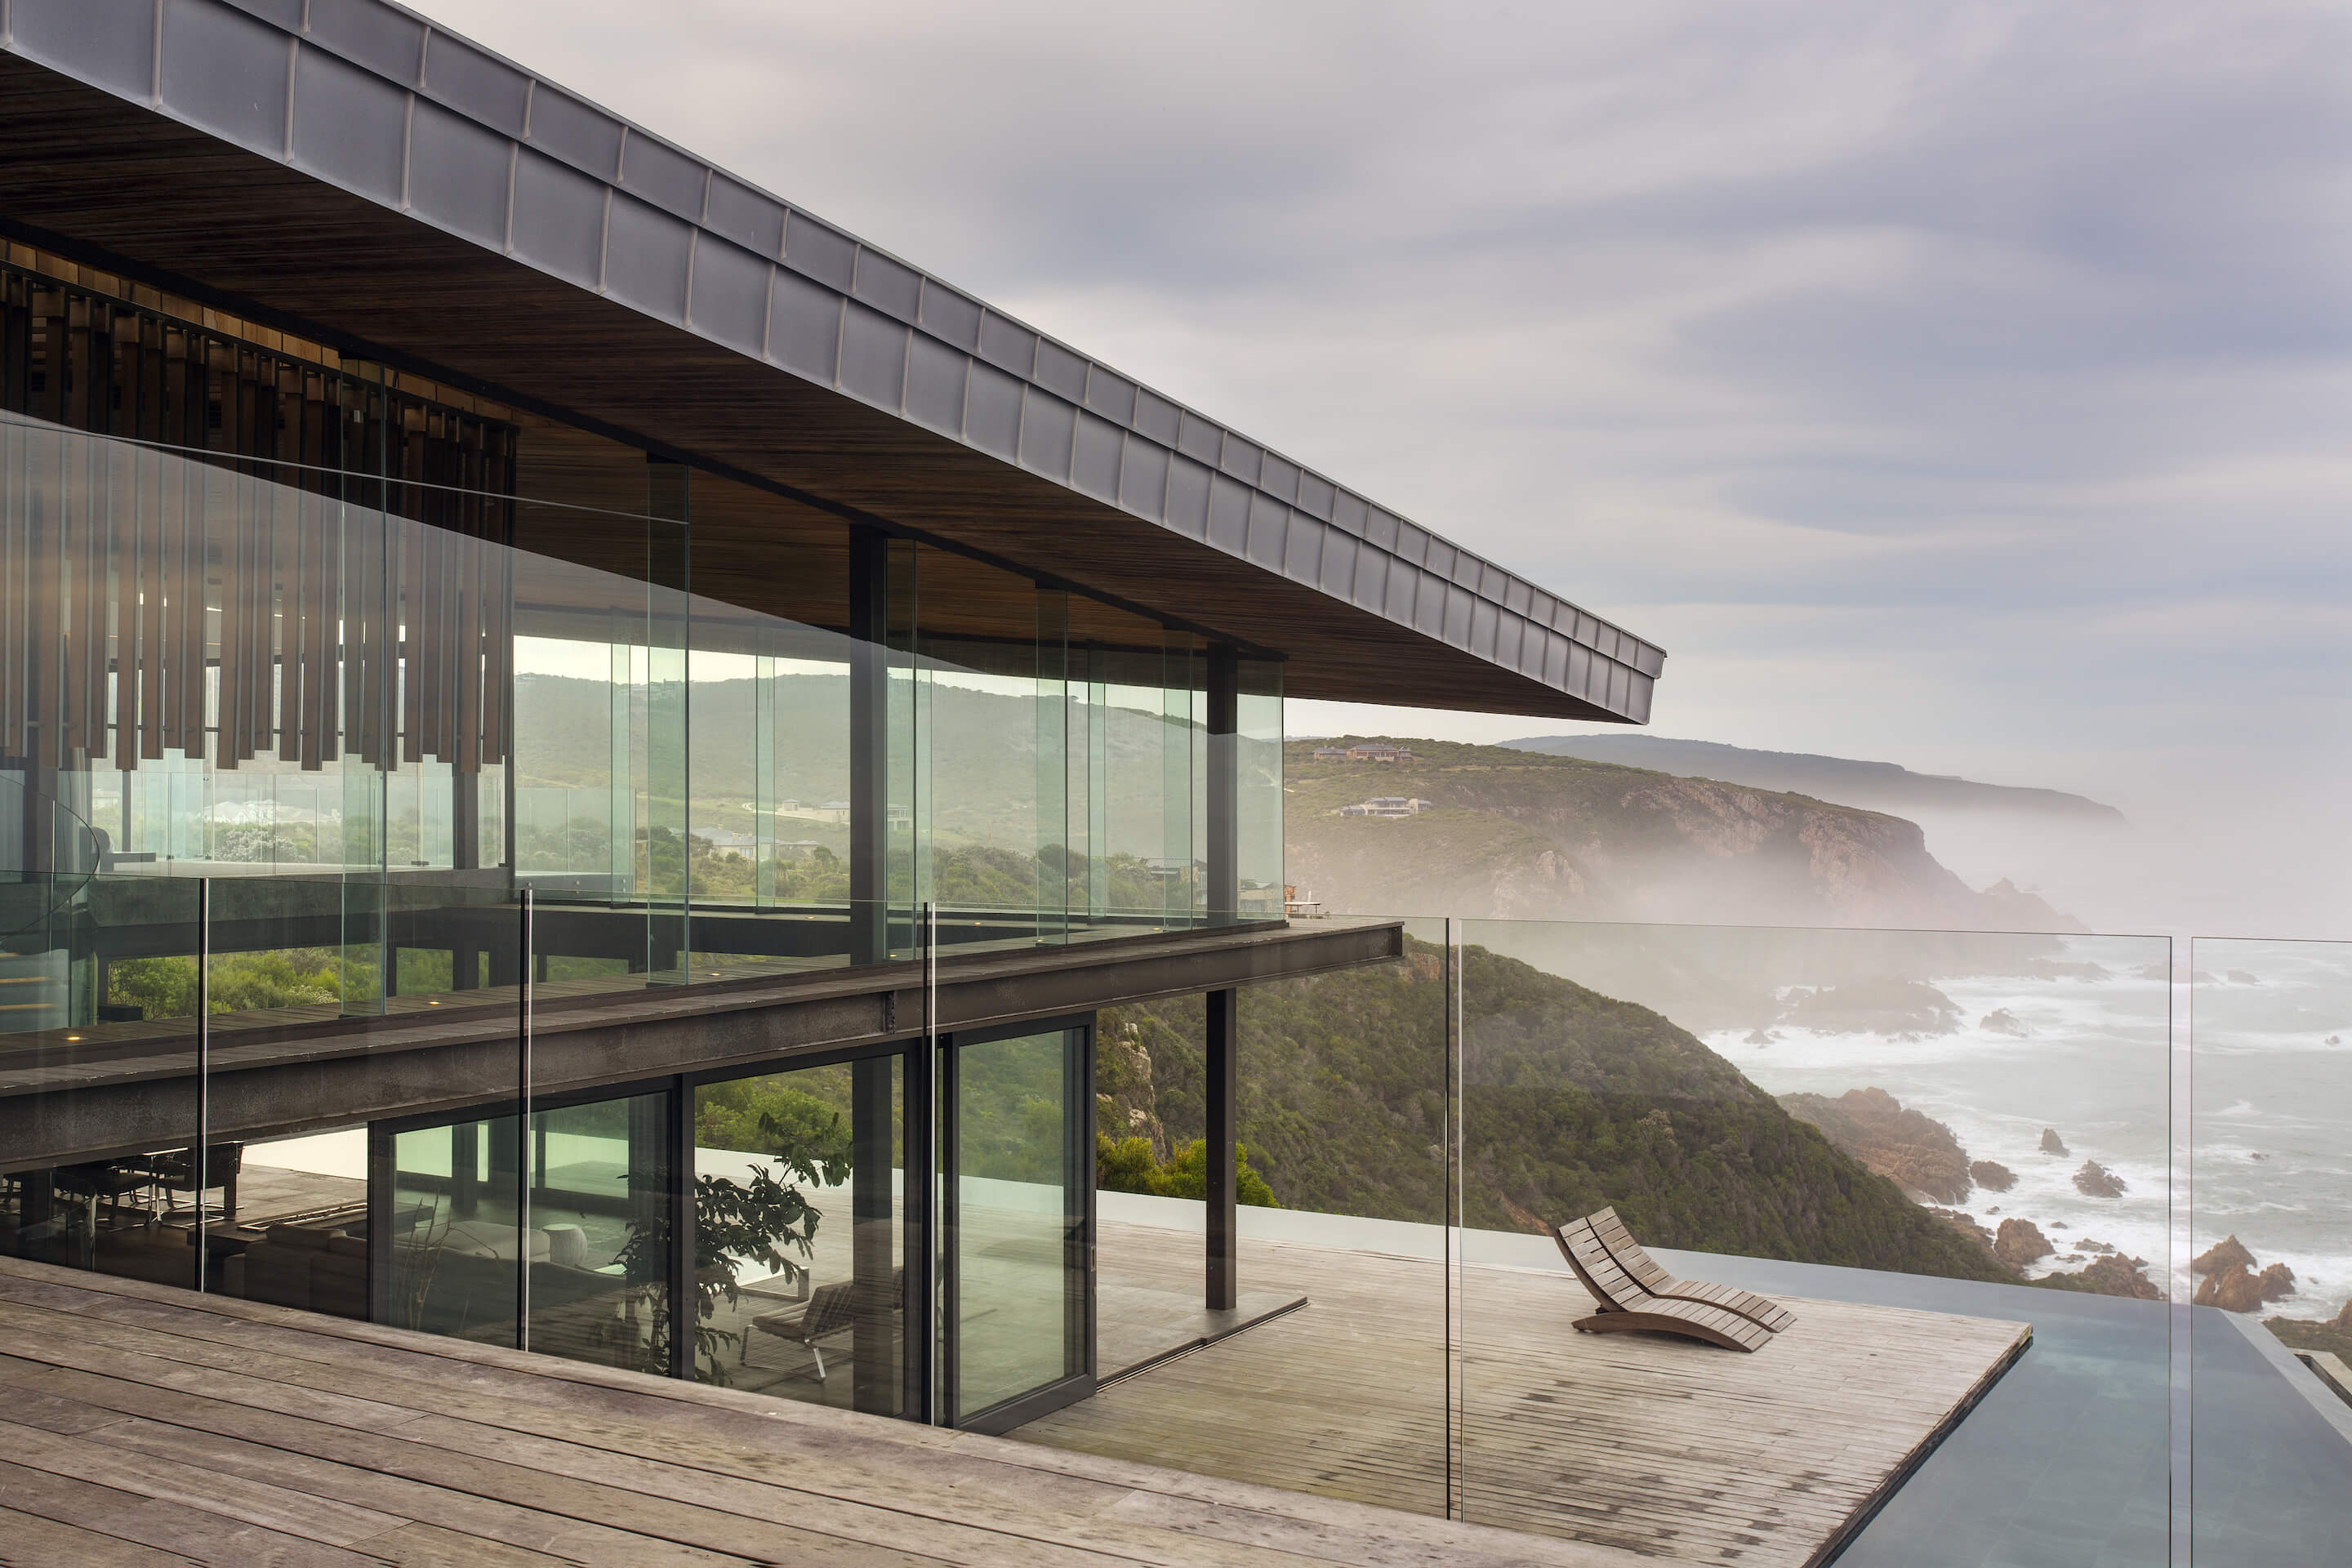 Glancing through the frameless glass panels surrounding the upper balcony, we see the large expanse of timber patio, open design two story living room, and surrounding lido pool with expansive views of the cliffs and ocean.